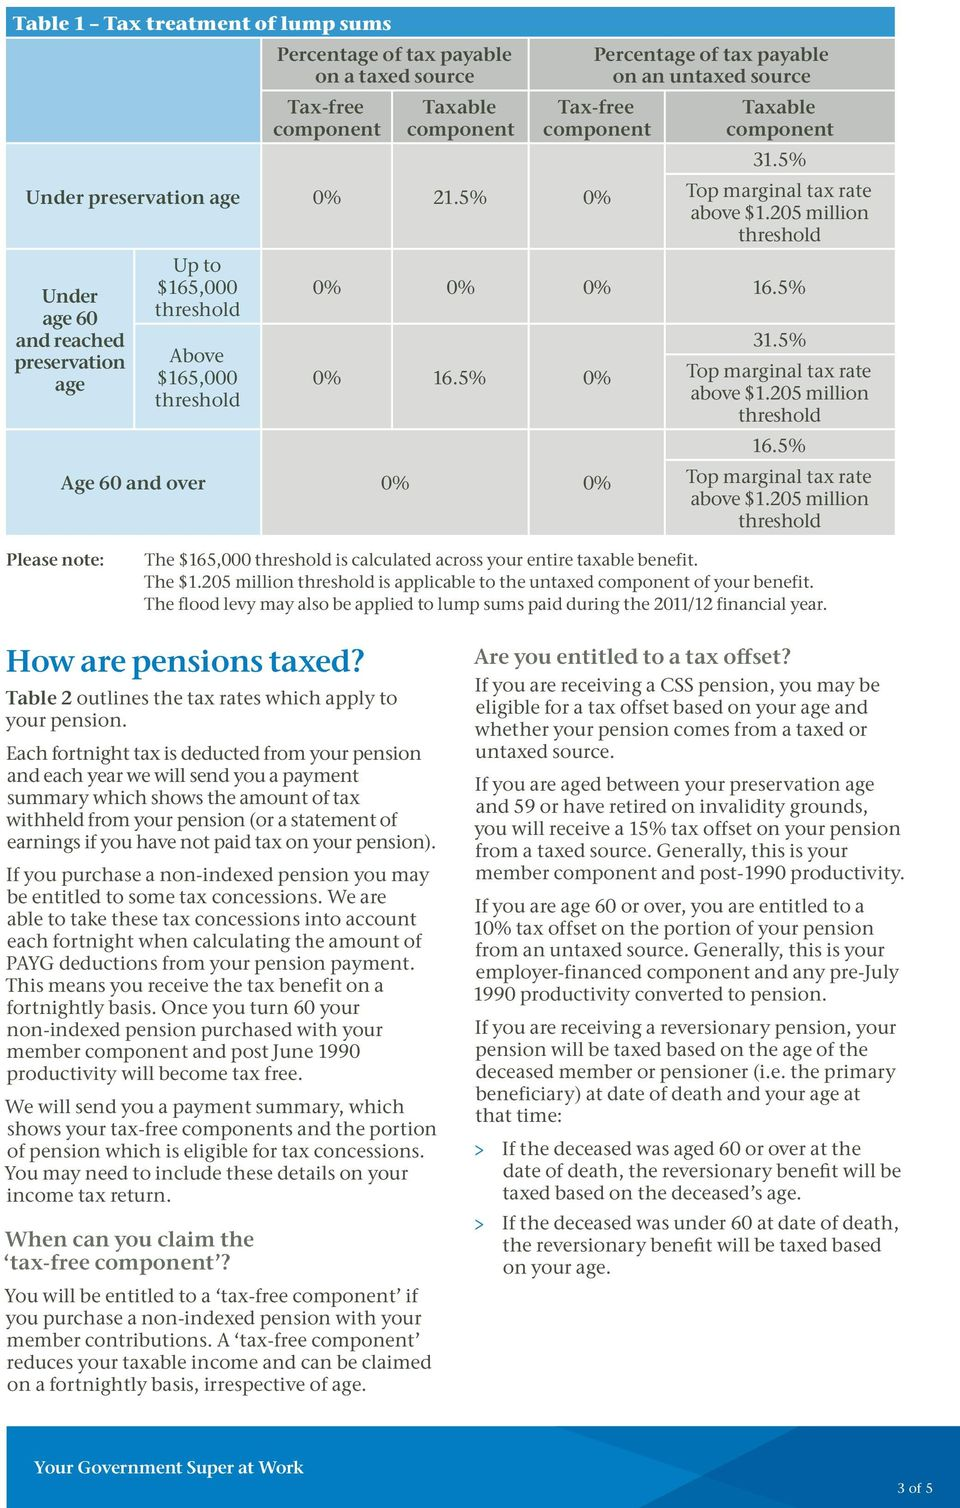 The flood levy may also be applied to lump sums paid during the 2011/12 financial year. How are pensions taxed? Table 2 outlines the s which apply to your pension.